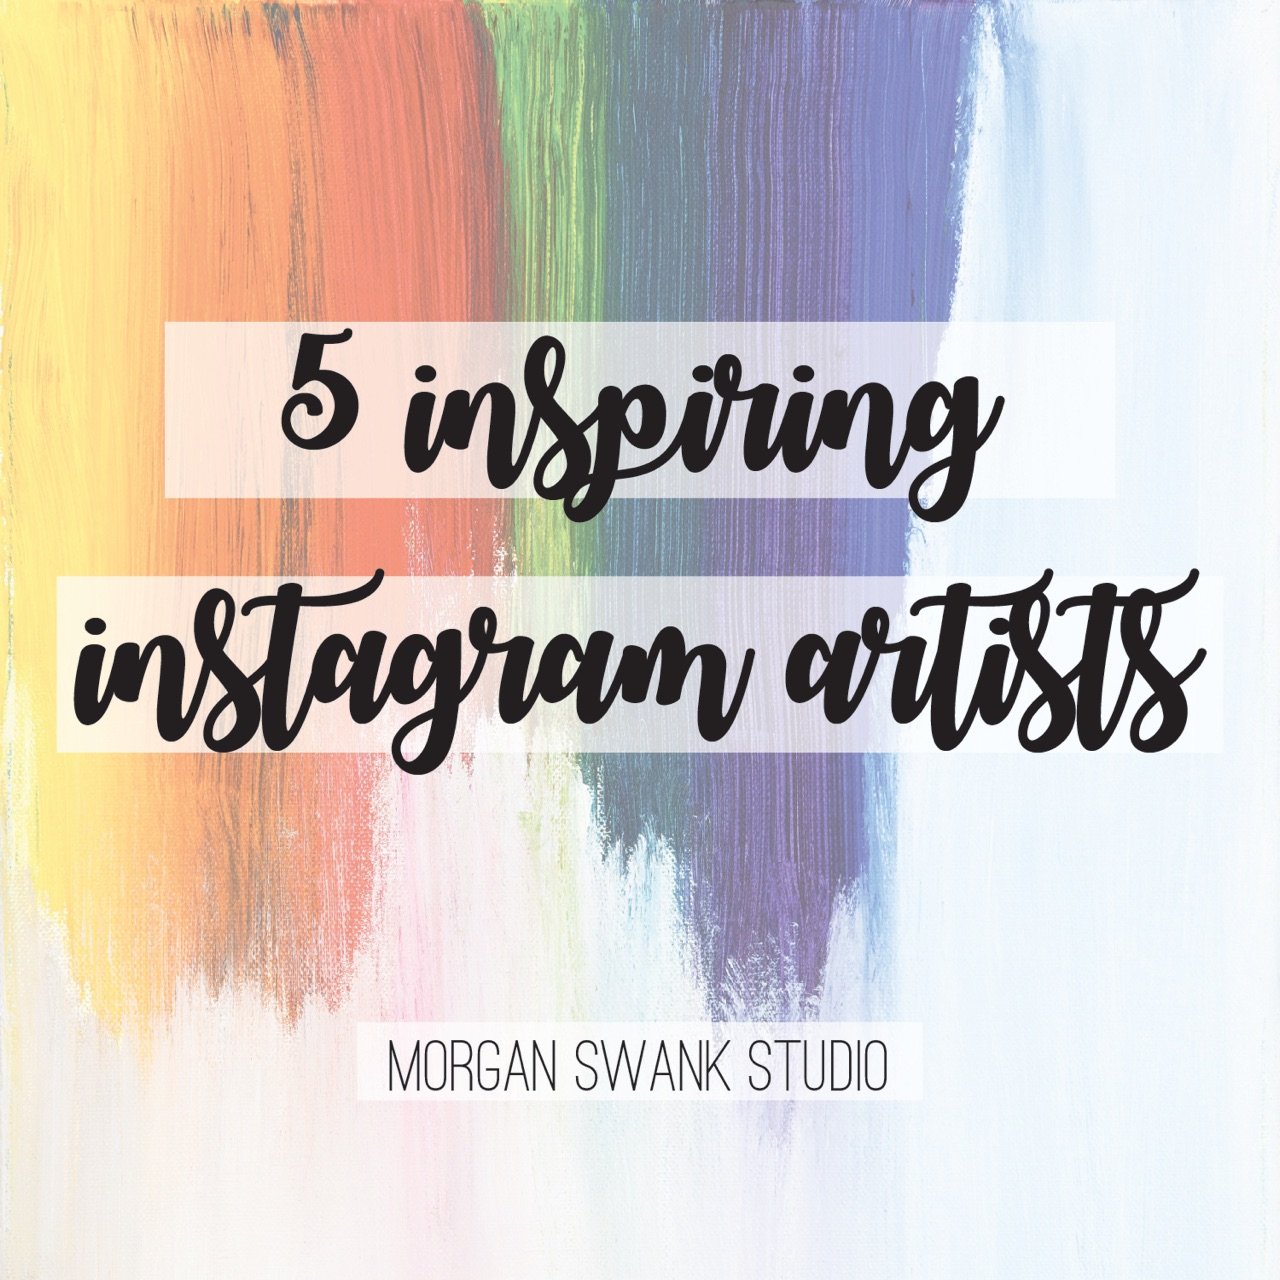 5-inspiring-instagram-artists.JPG